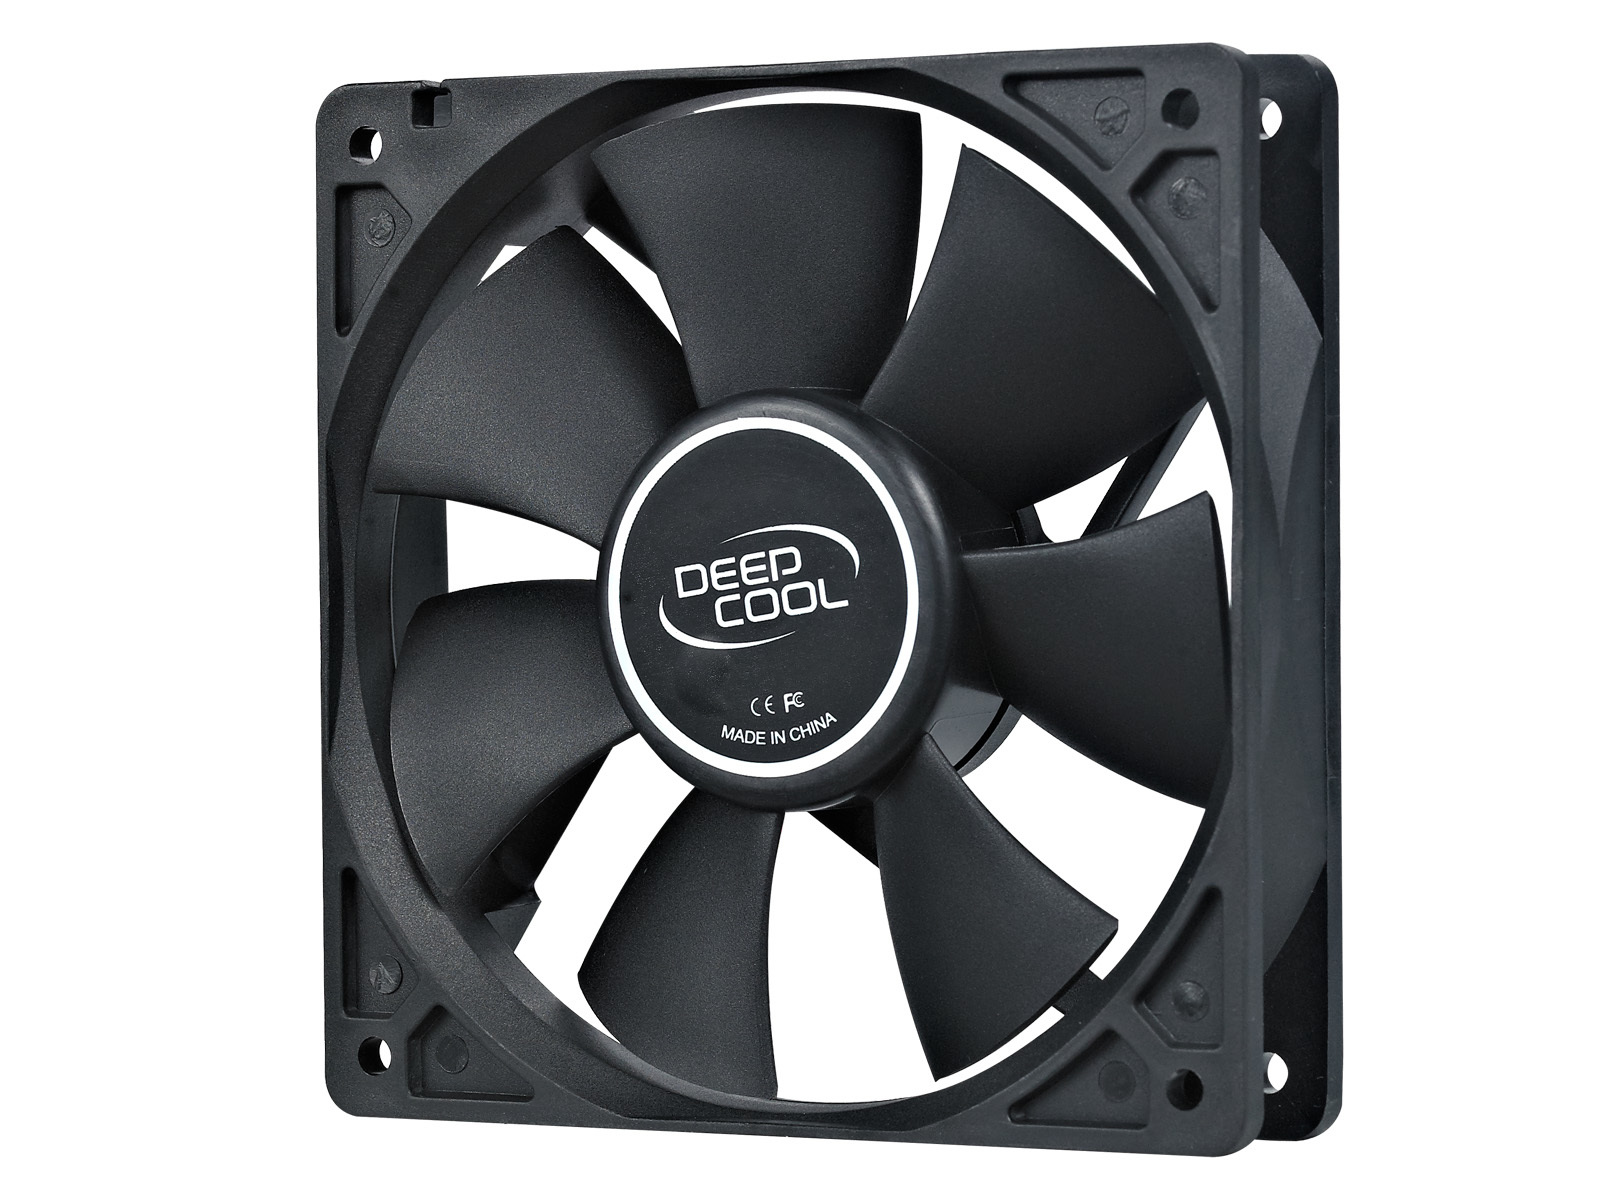 Deepcool: 120mm Hydro Bearing Case Fan with 4-pin Molex Connector image